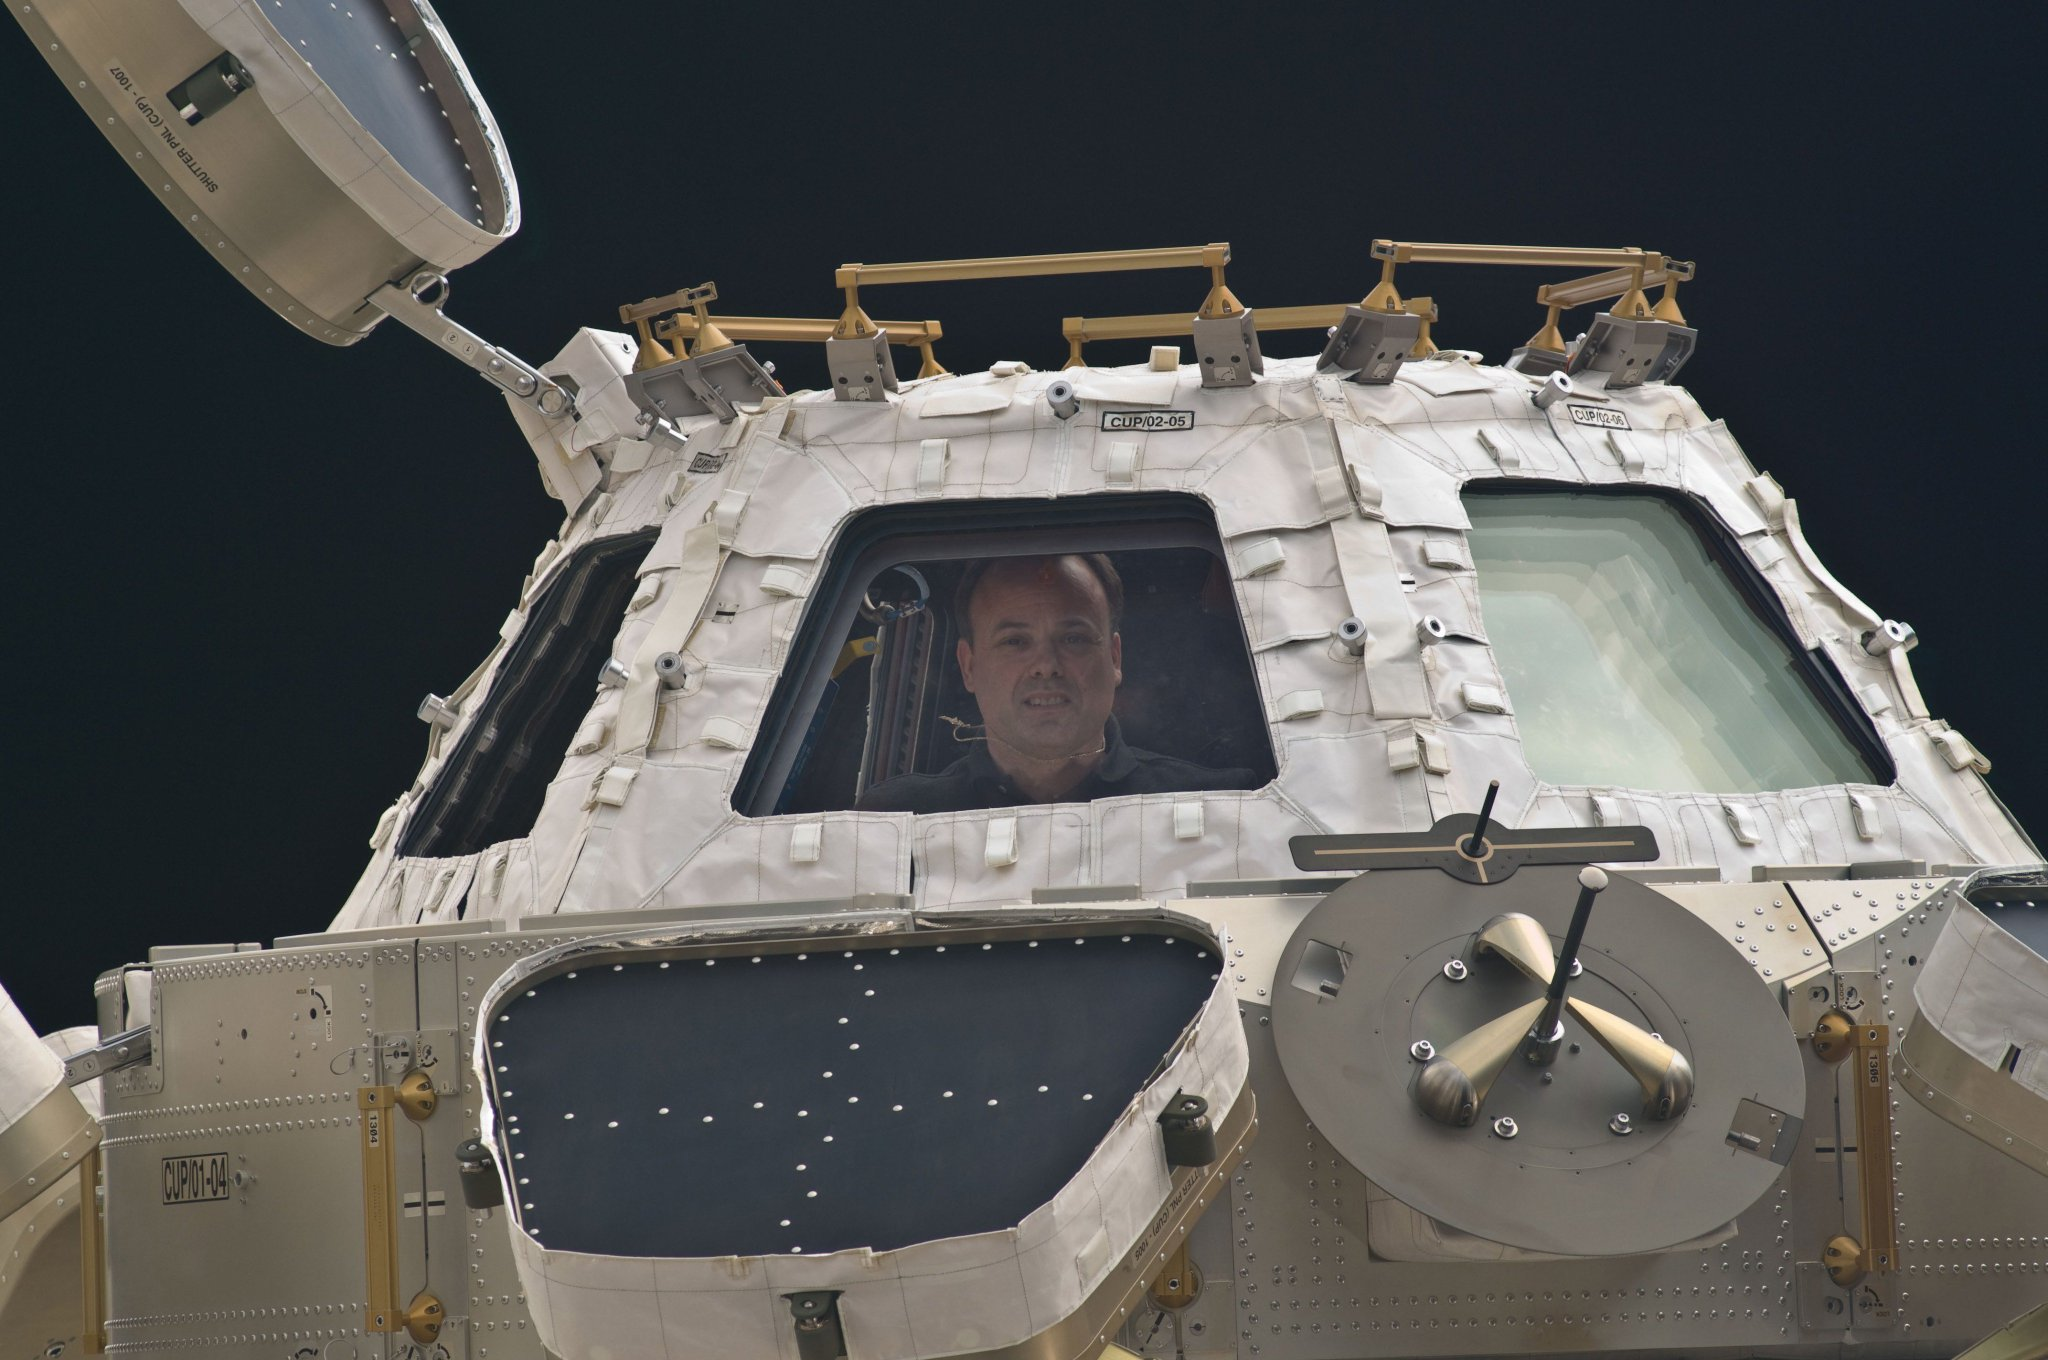 #OnThisDay in 2011, astronaut Ron Garan enjoys the view from the cupola on the International #Space Station. https://t.co/XpJ9cXJQVM